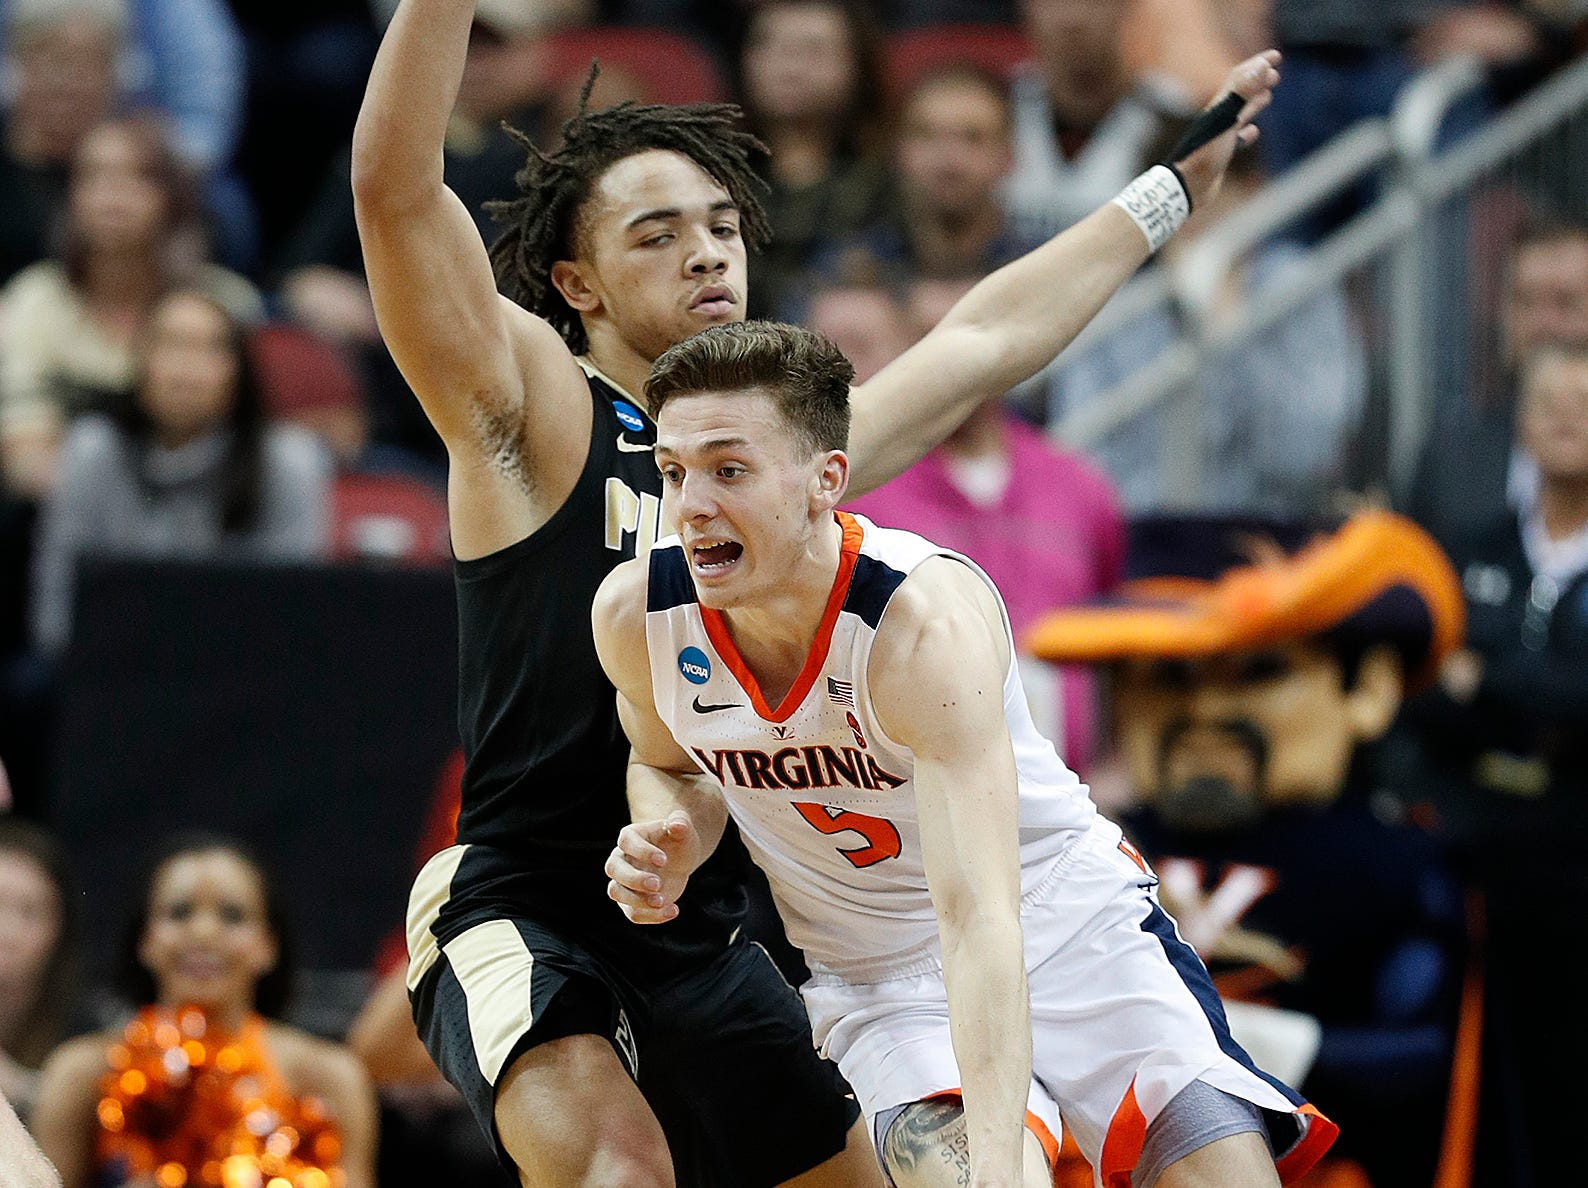 "Virginia Cavaliers guard Kyle Guy (5) drives around Purdue Boilermakers guard Carsen Edwards (3) in the second half of their NCAA Division I Basketball Championship ""Elite 8"" basketball game at the KFC Yum! Center in Louisville, KY., on Saturday, Mar 30, 2019. The Virginia Cavaliers defeated the Purdue Boilermakers 80-75."